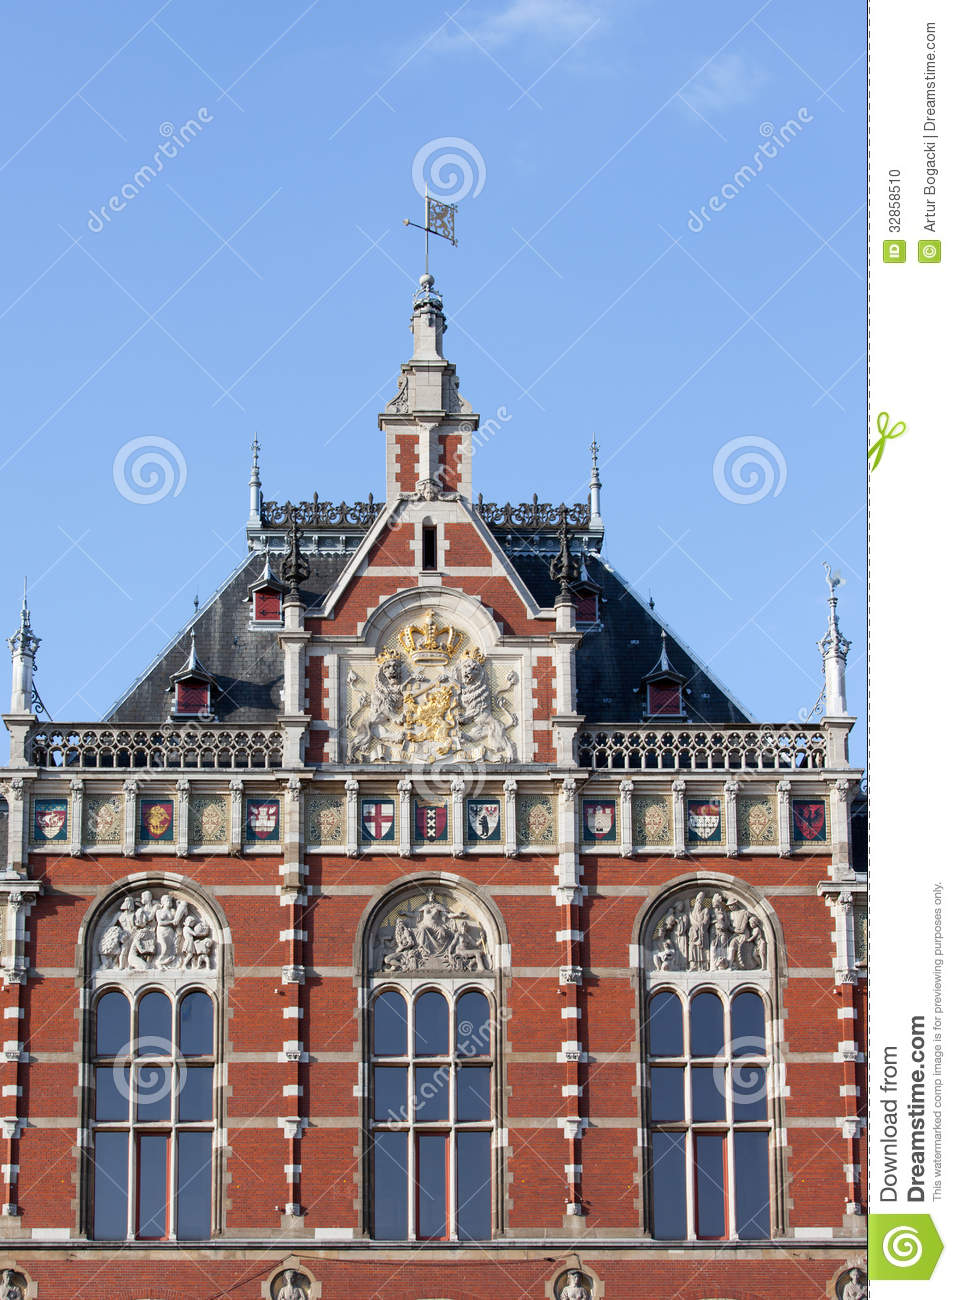 Amsterdam Central Station Architectural Details Stock